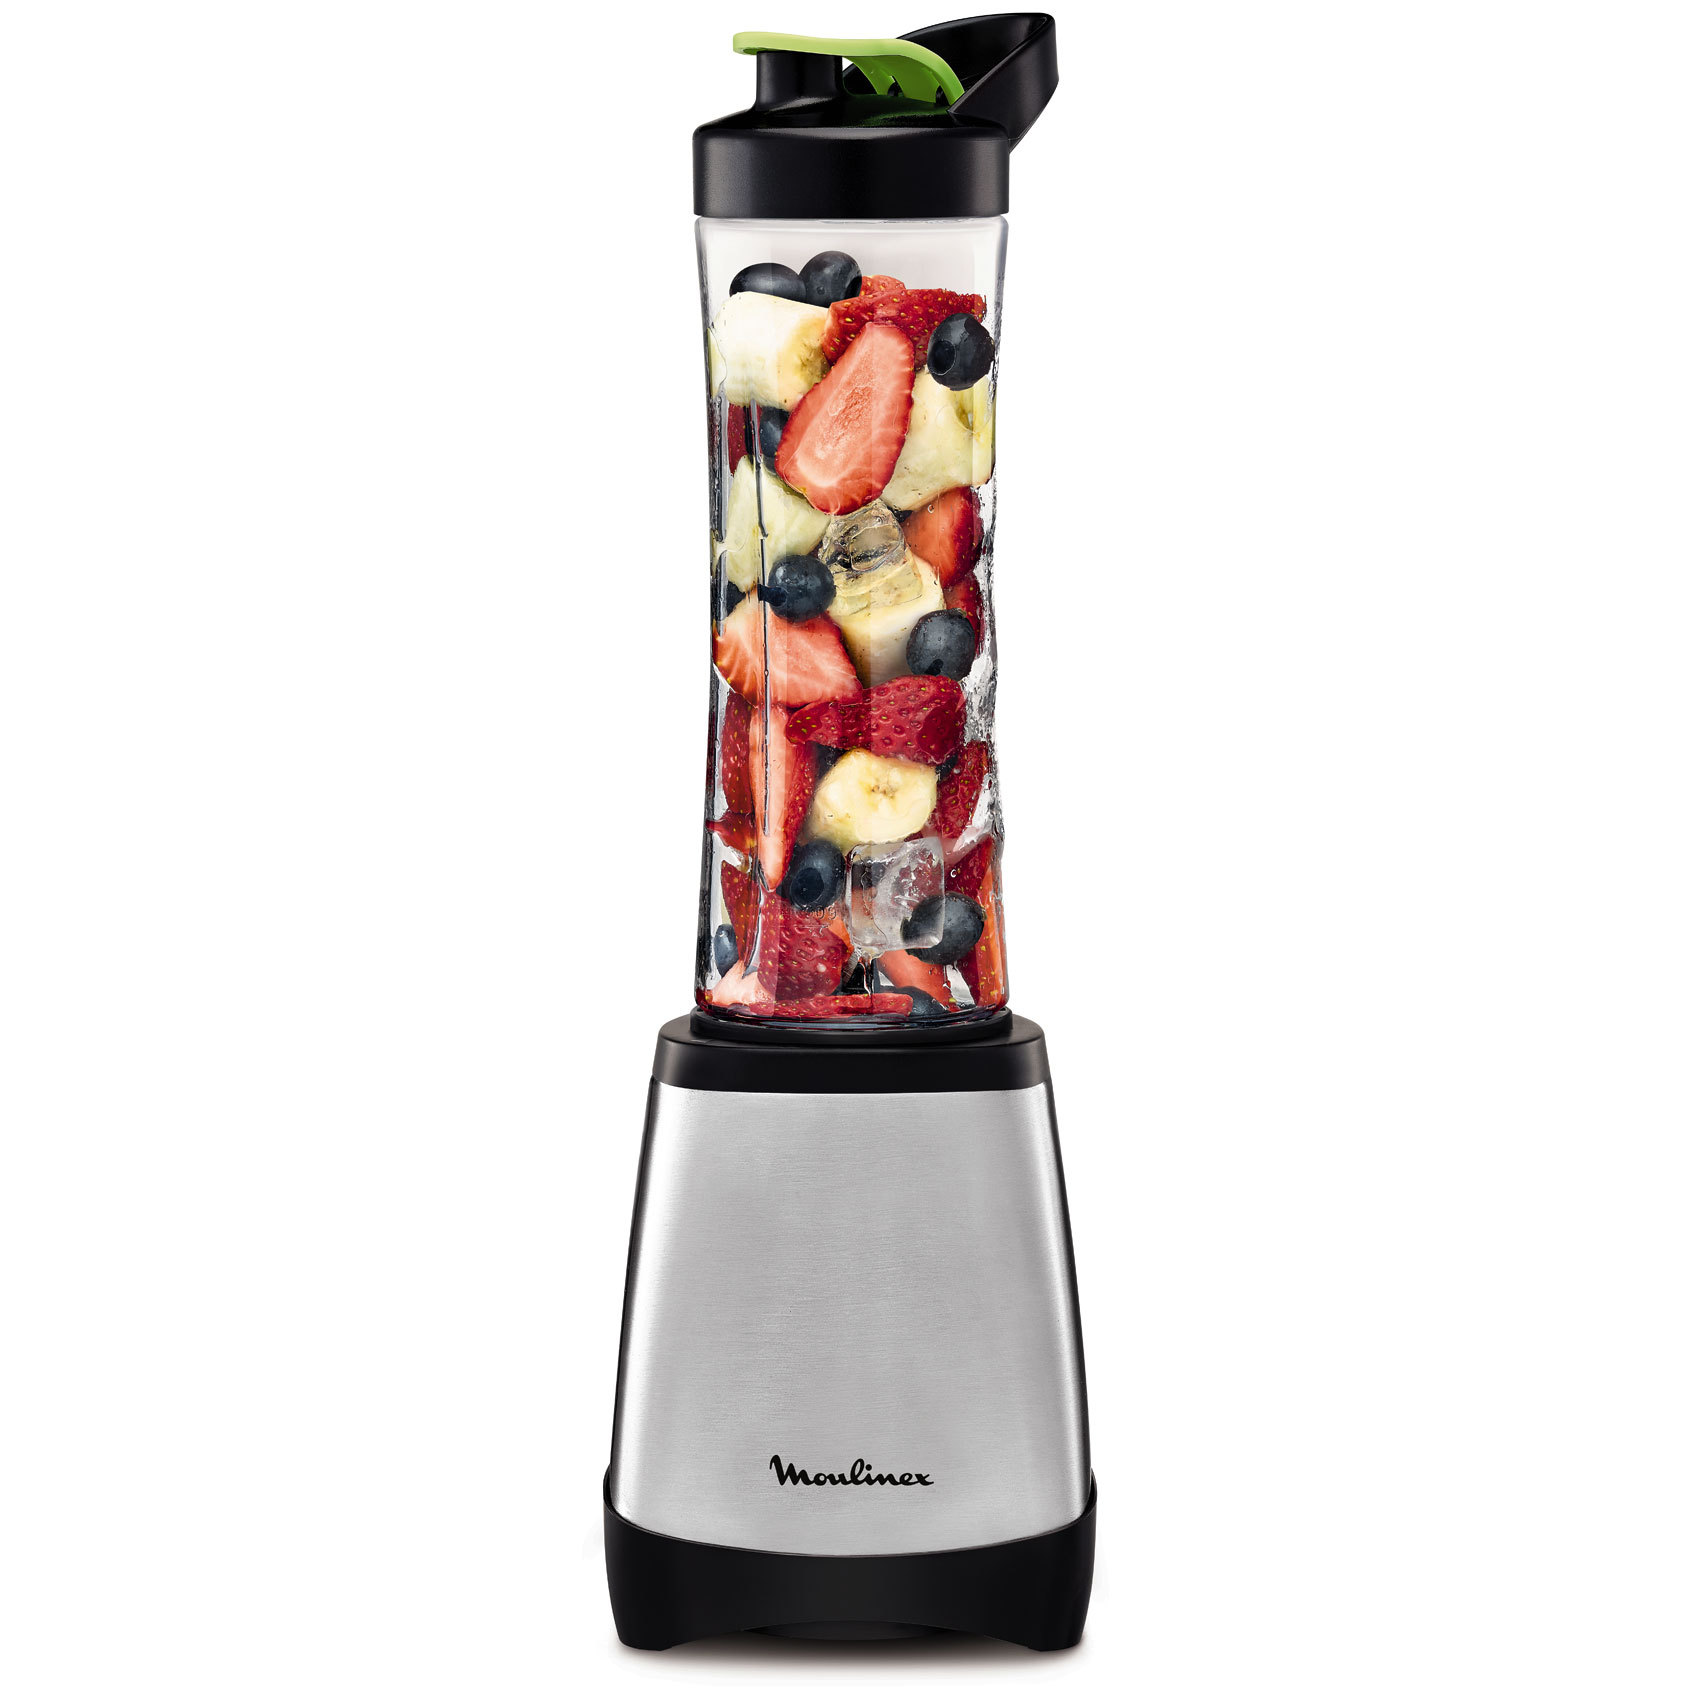 Buy Moulinex Smoothie Maker LM1A0D27 Online in UAE